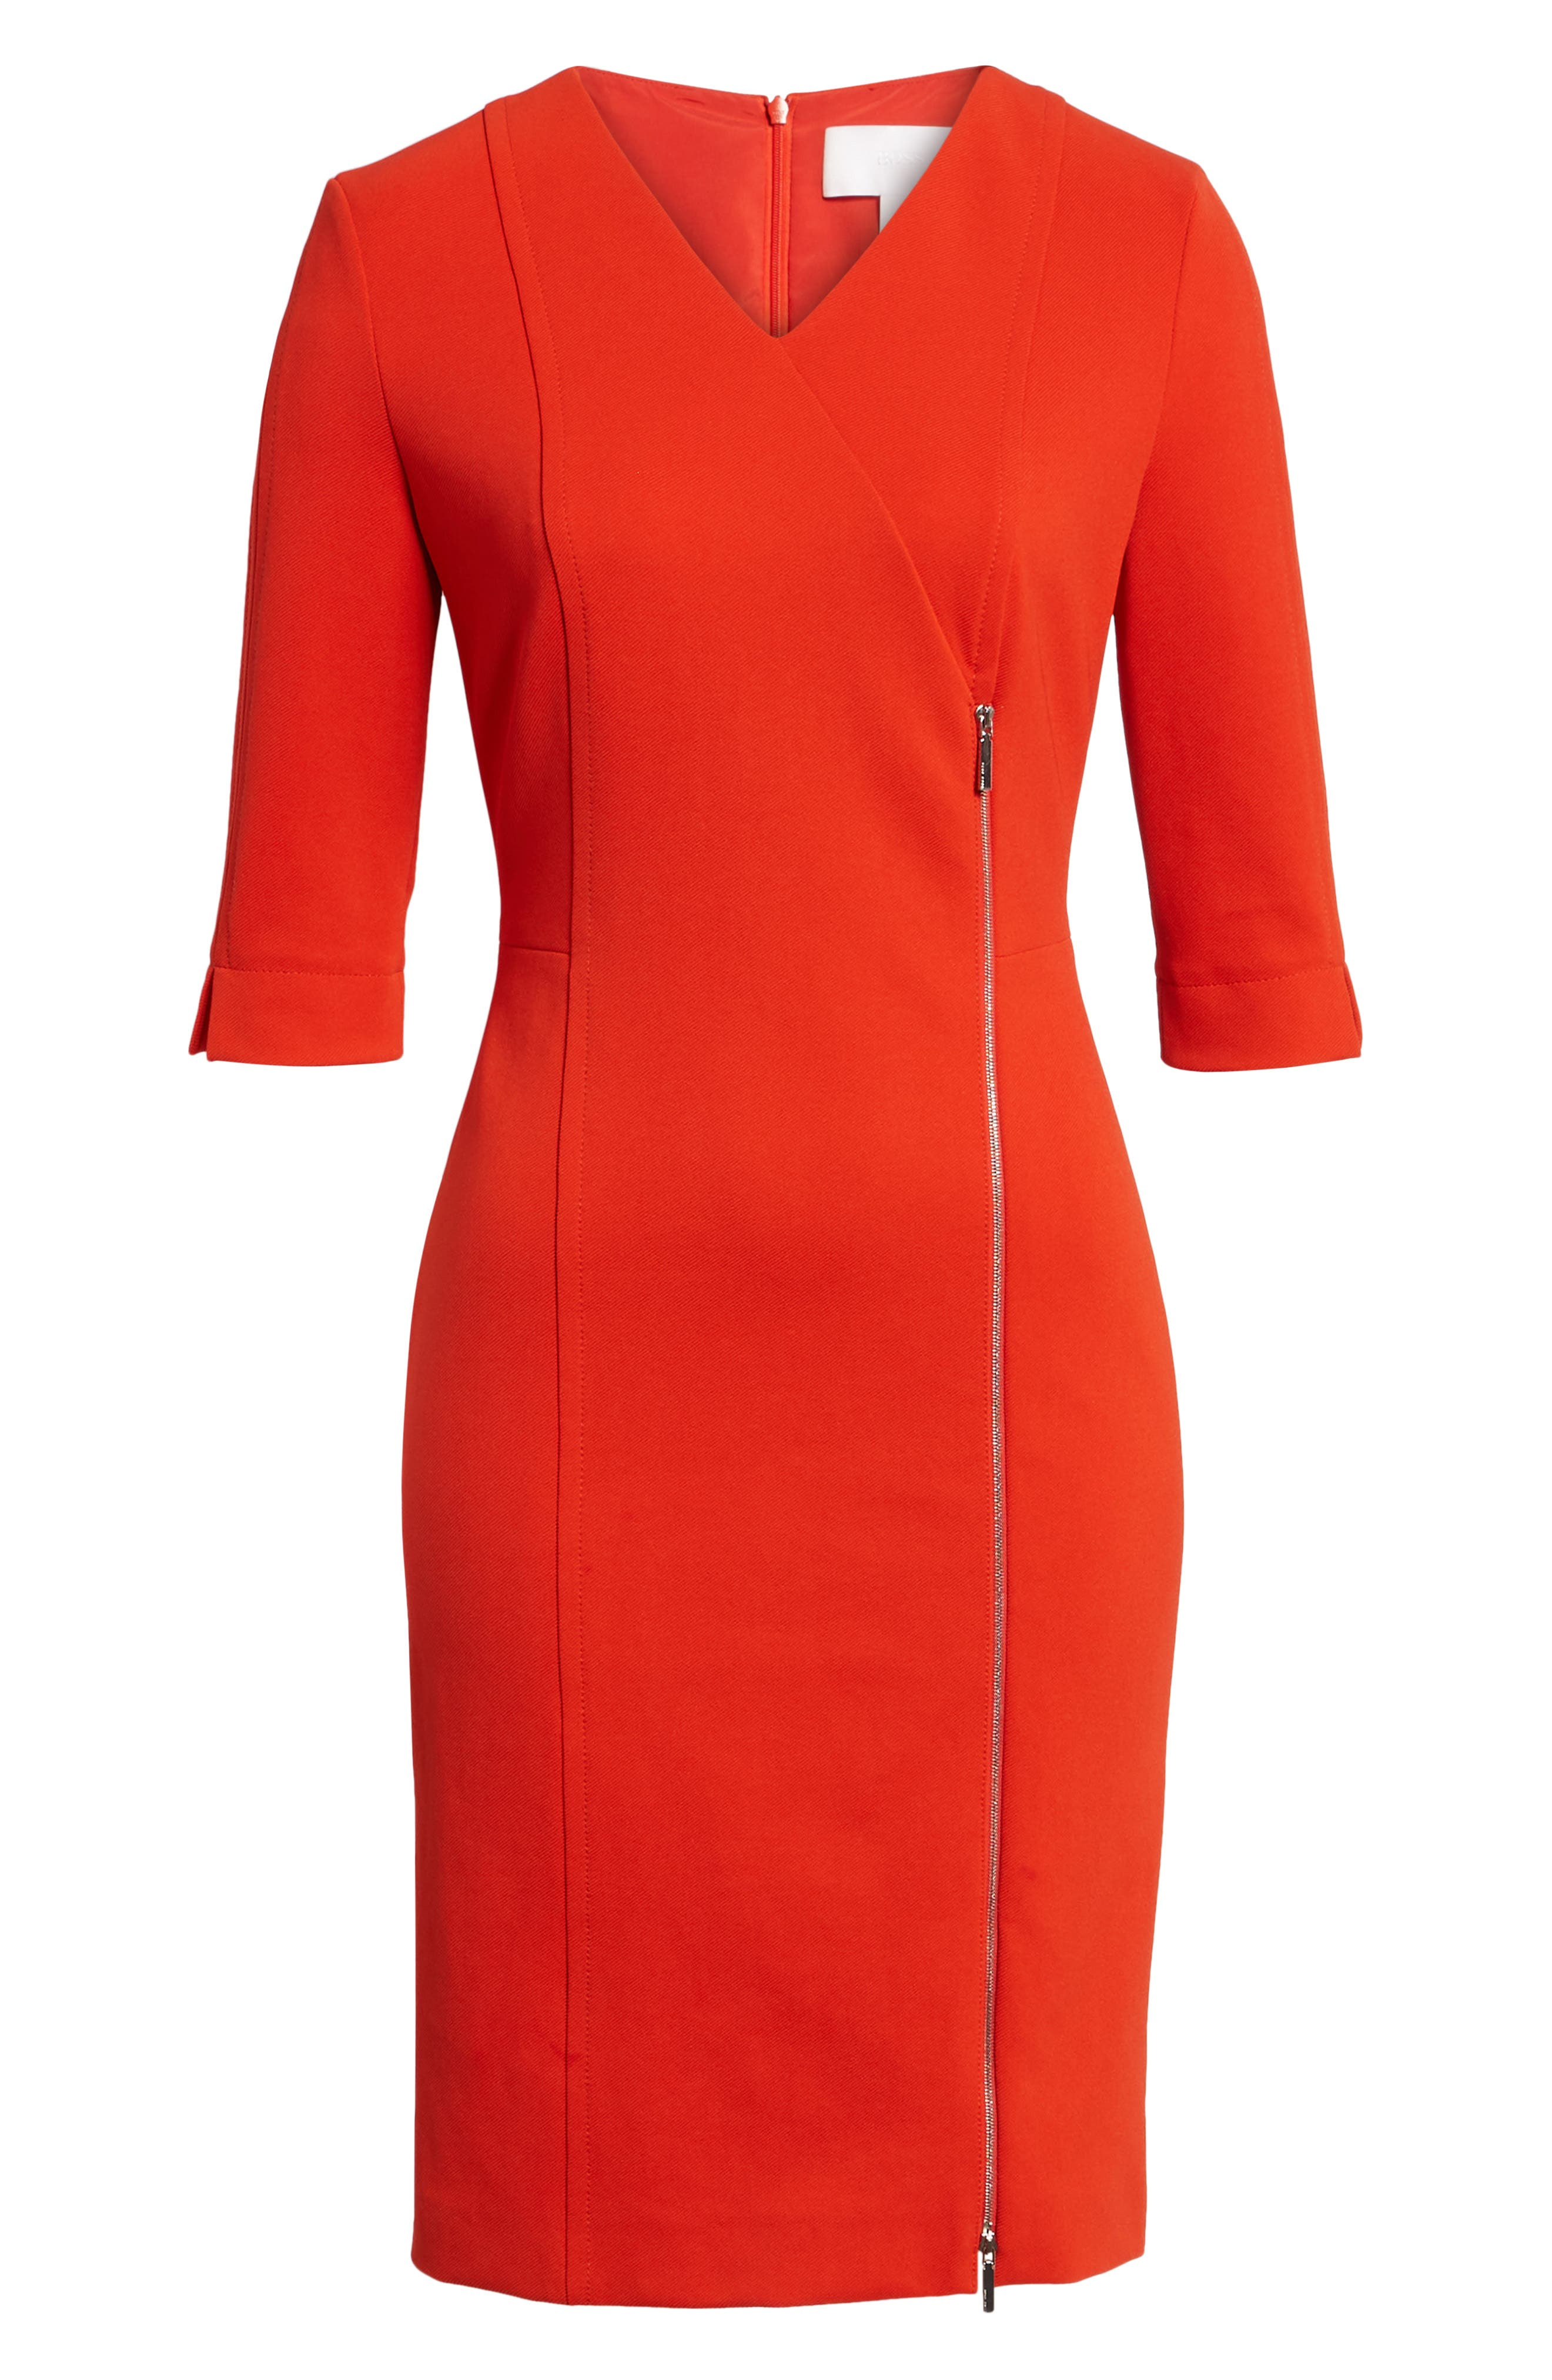 Deazema Twill Jersey Dress,                             Alternate thumbnail 6, color,                             824